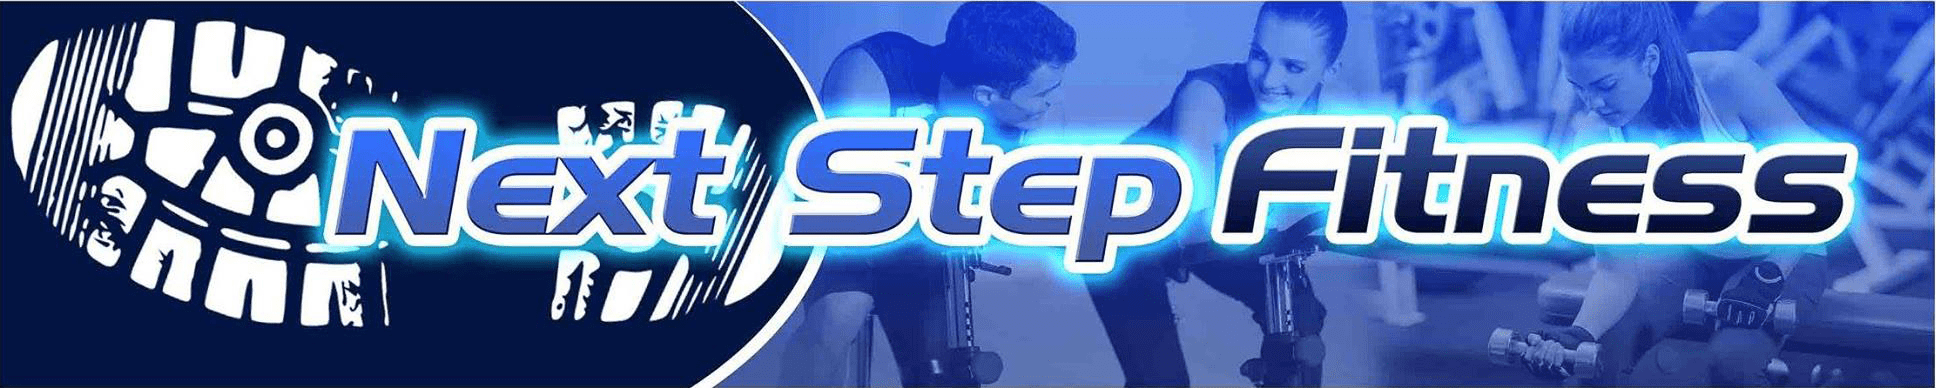 Next Step Fitness Banner Ocala's 24 Hour Gym